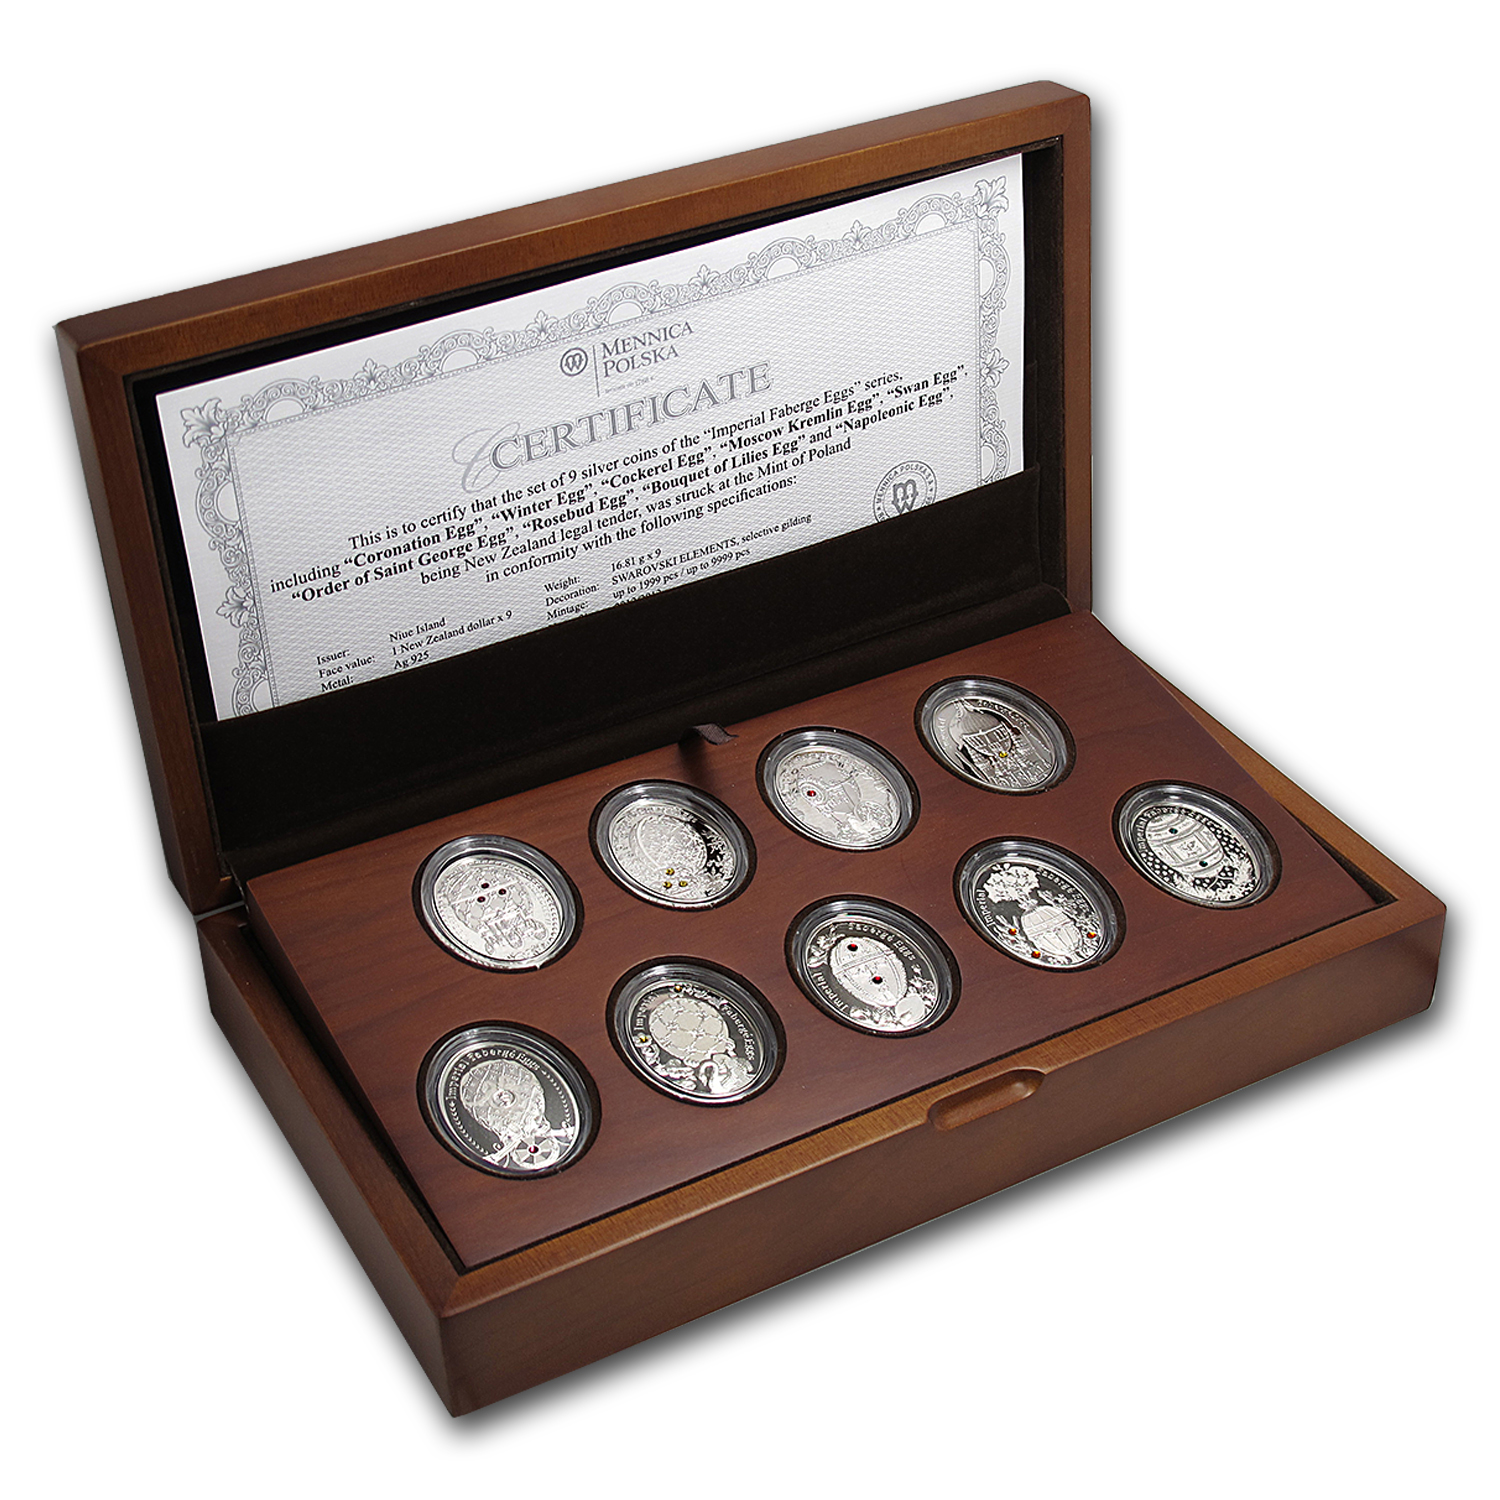 Niue Proof Silver $1 Imperial Faberge Eggs Series - 9 Coin Set